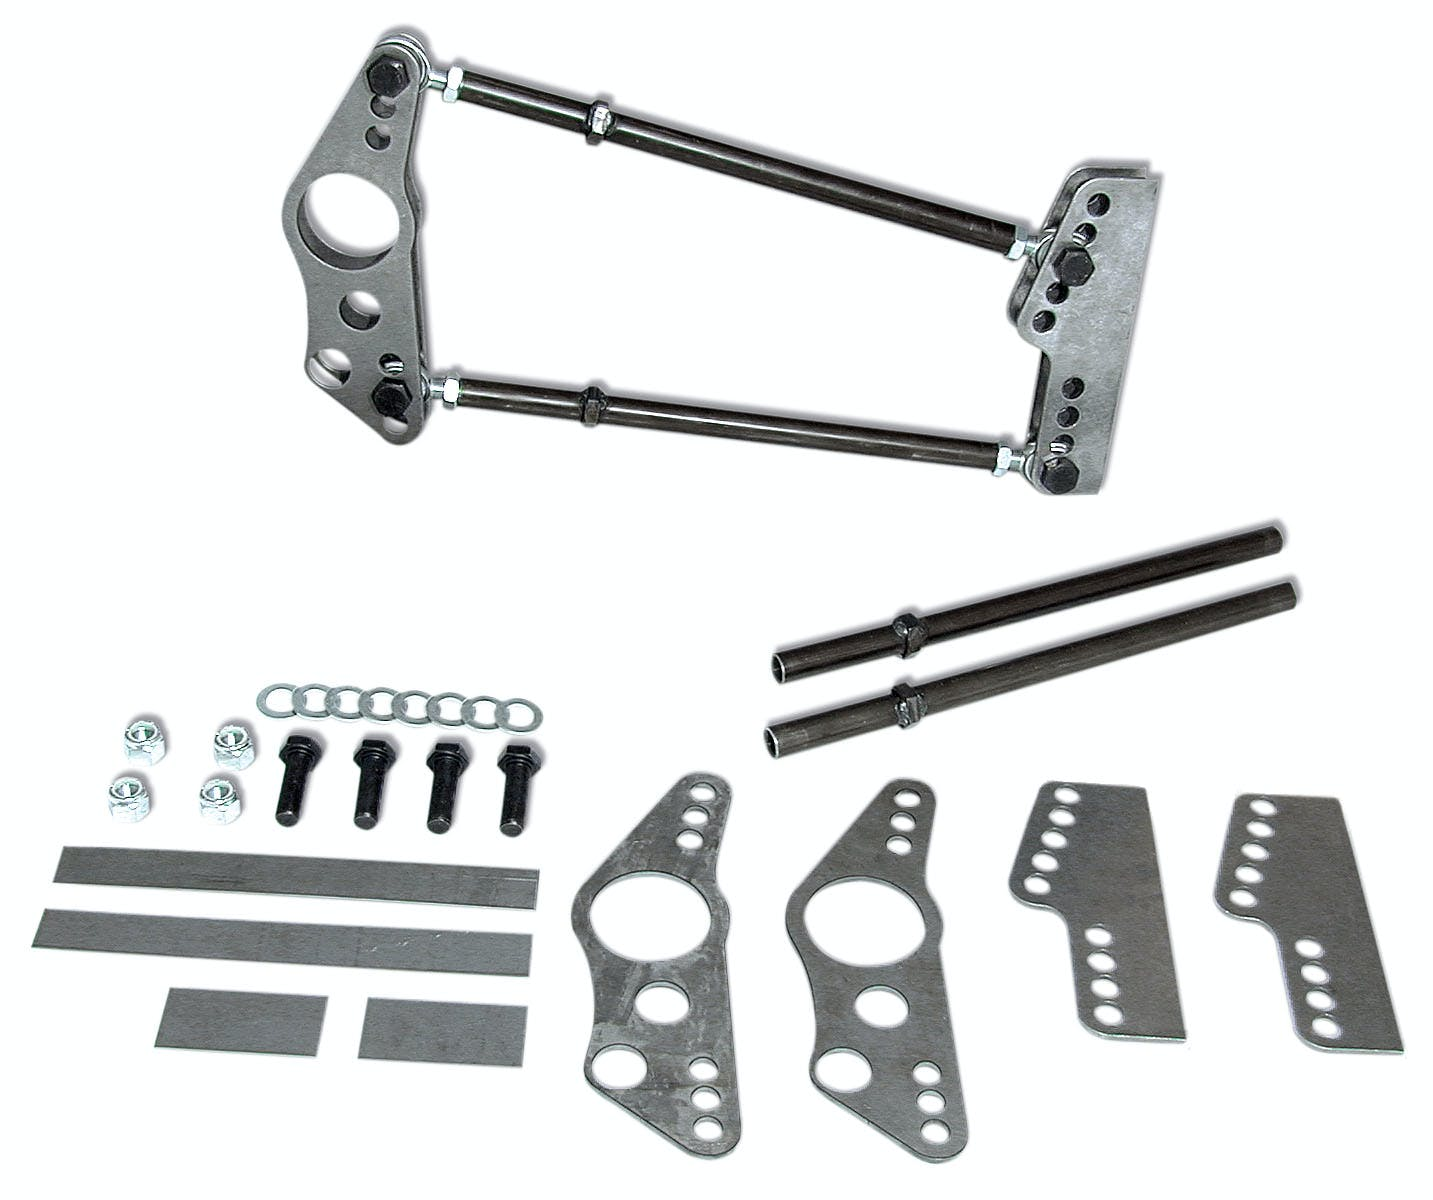 Competition Engineering C3060 Universal 4-Link Frame Rail